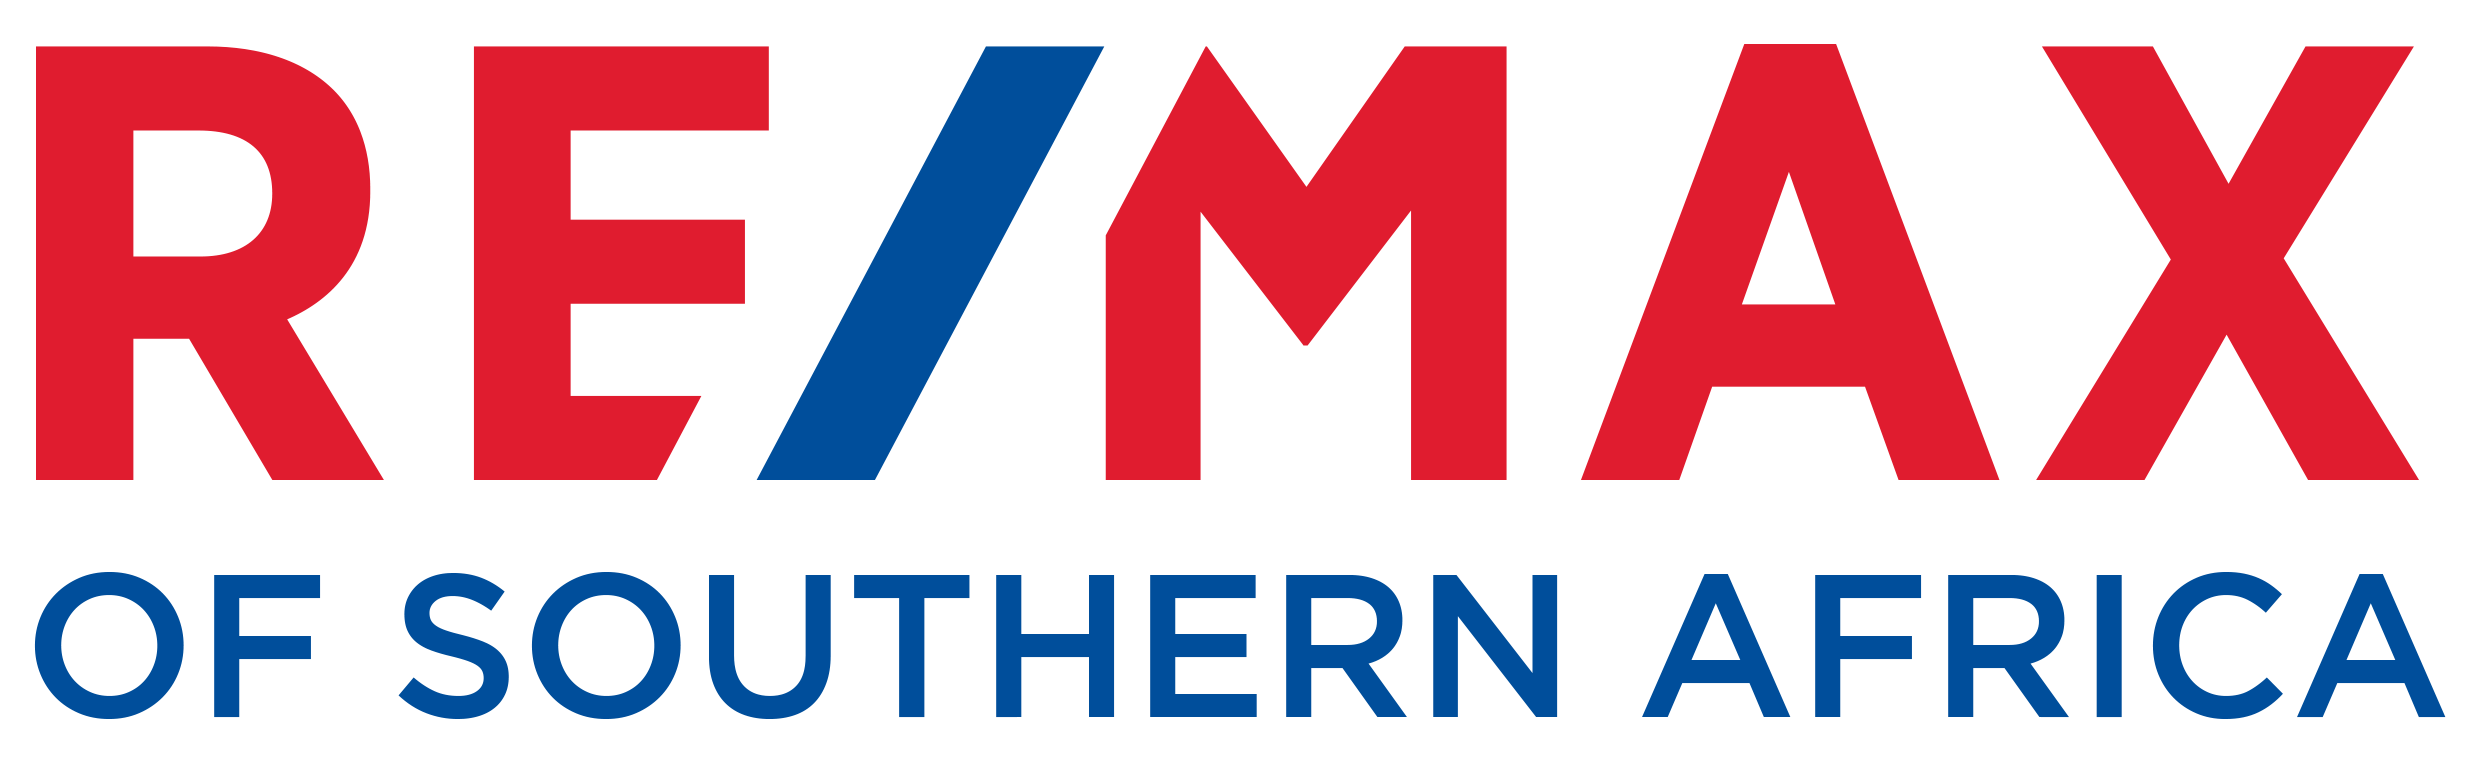 RE/MAX office logo